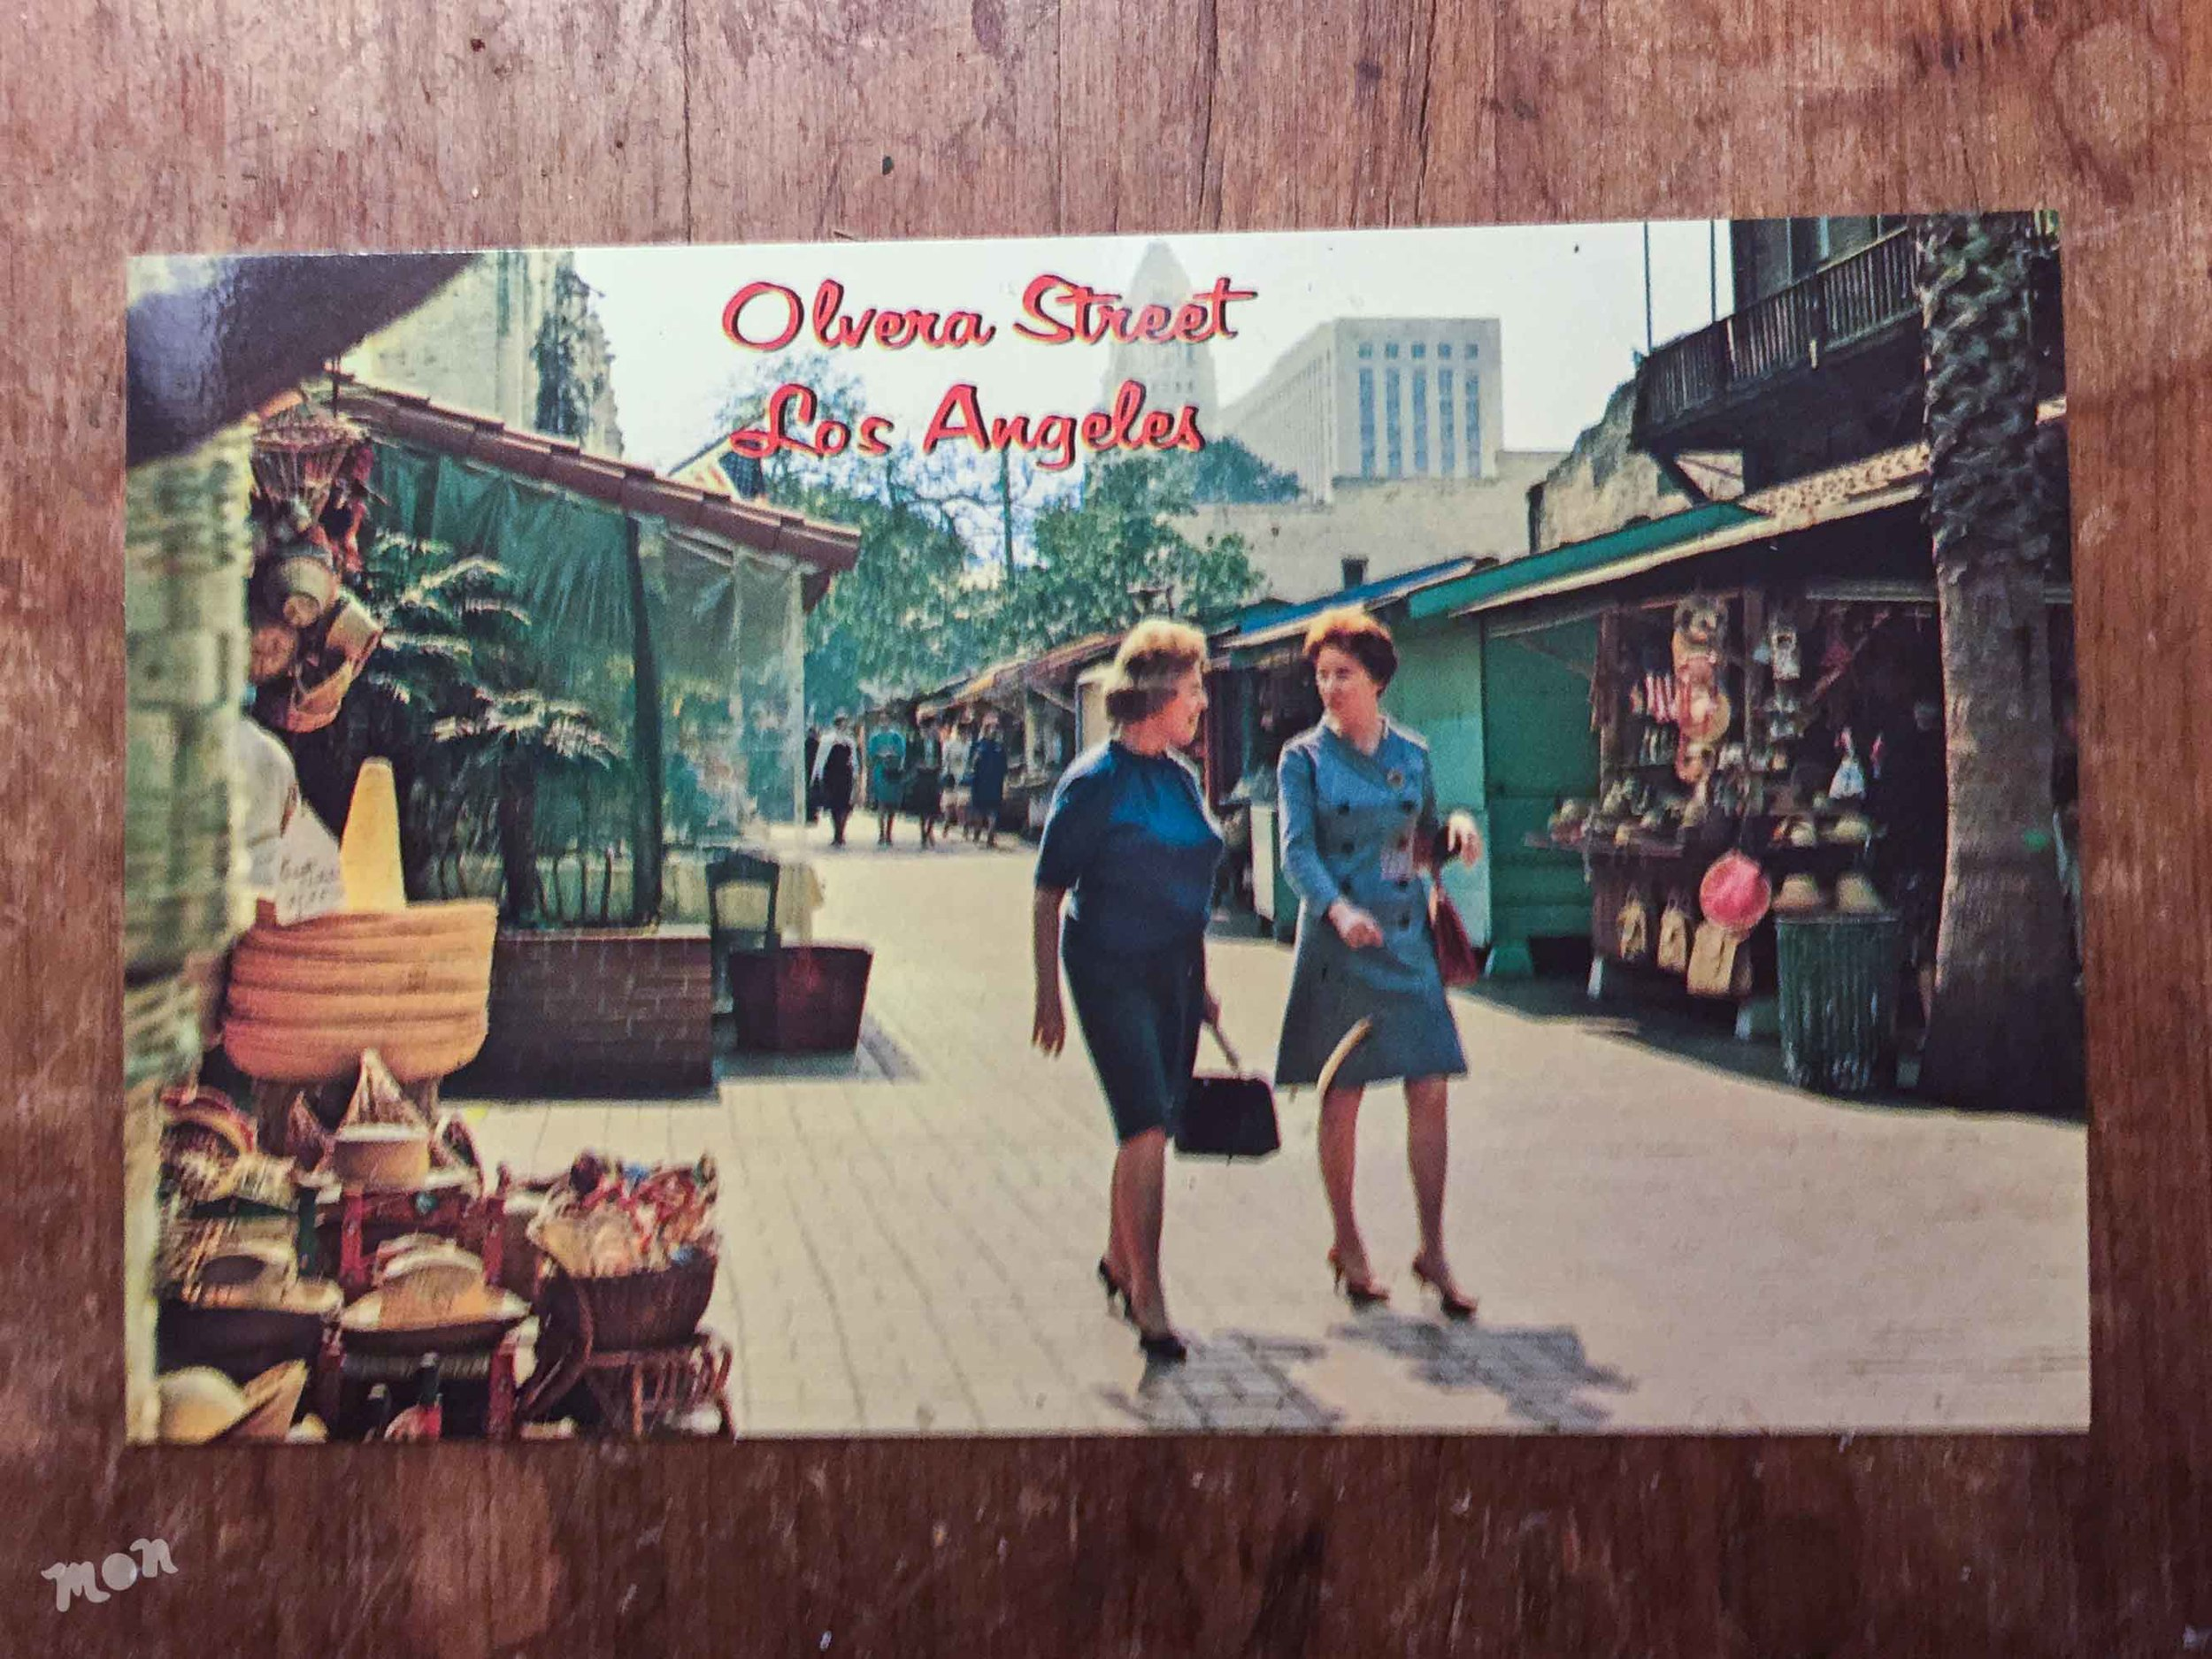 Postcard sold on Olvera St